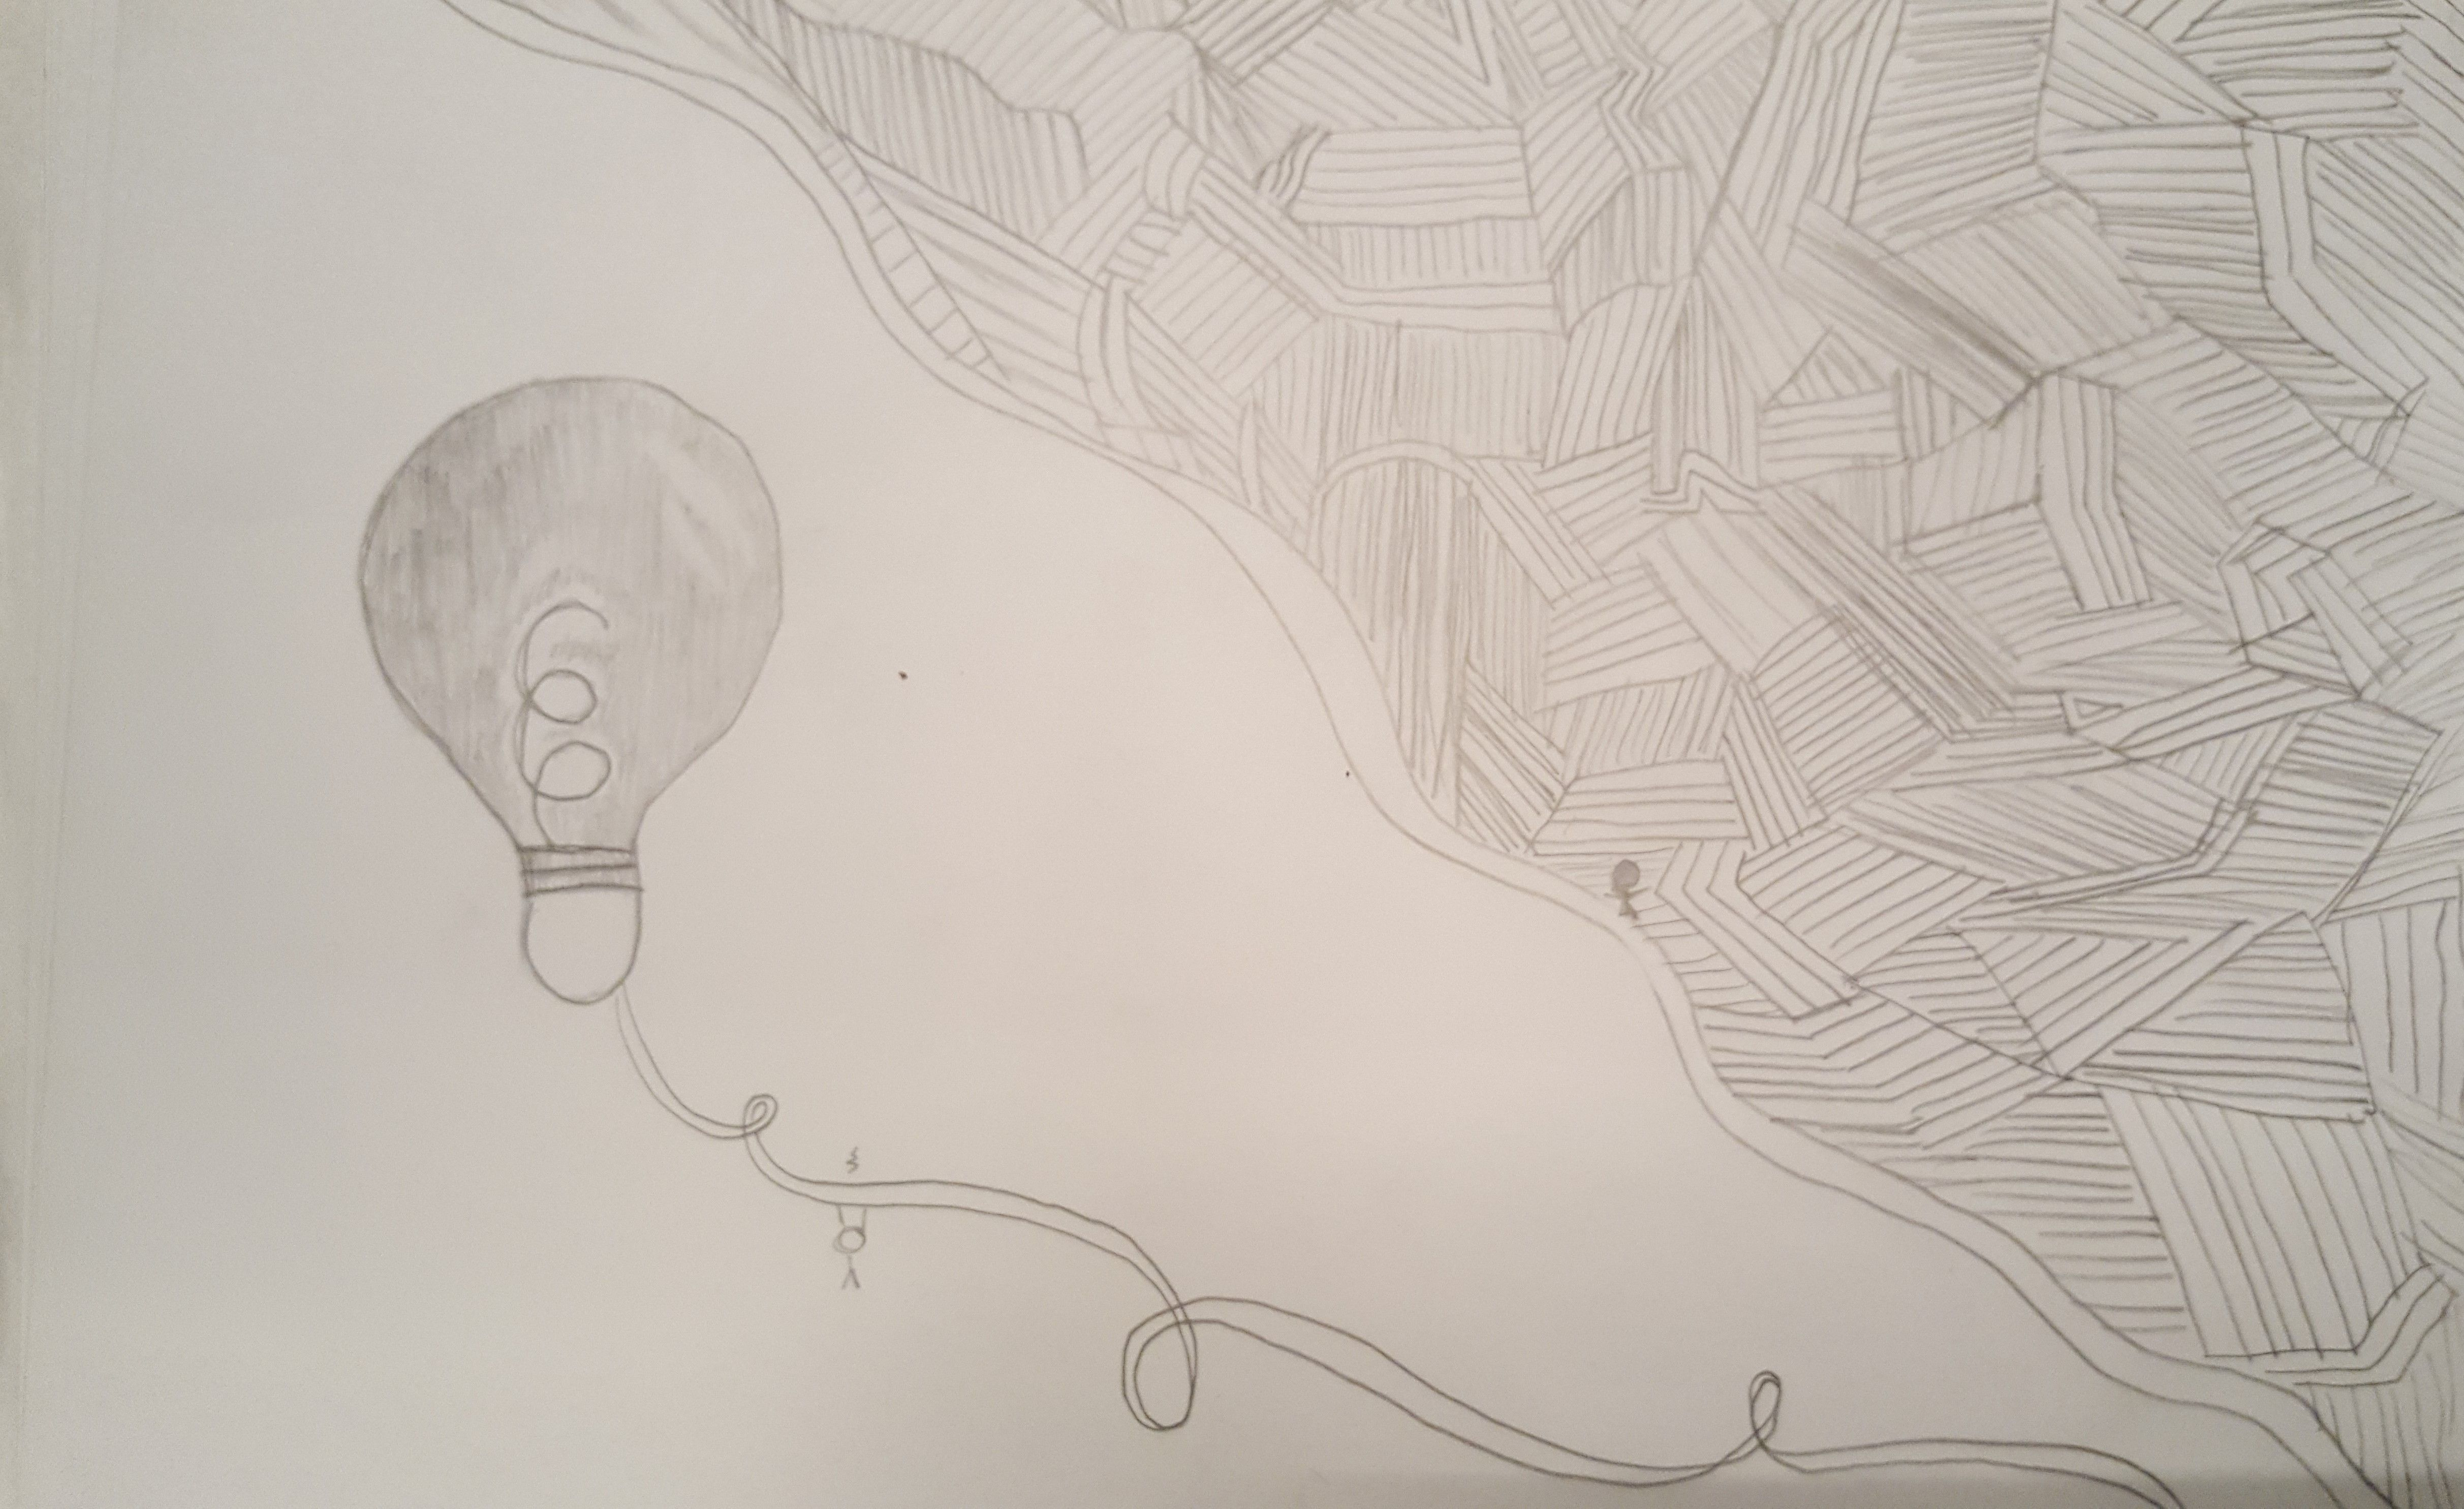 Drawing Lines Meaning : So i made this drawing a bit of long time ago and it has